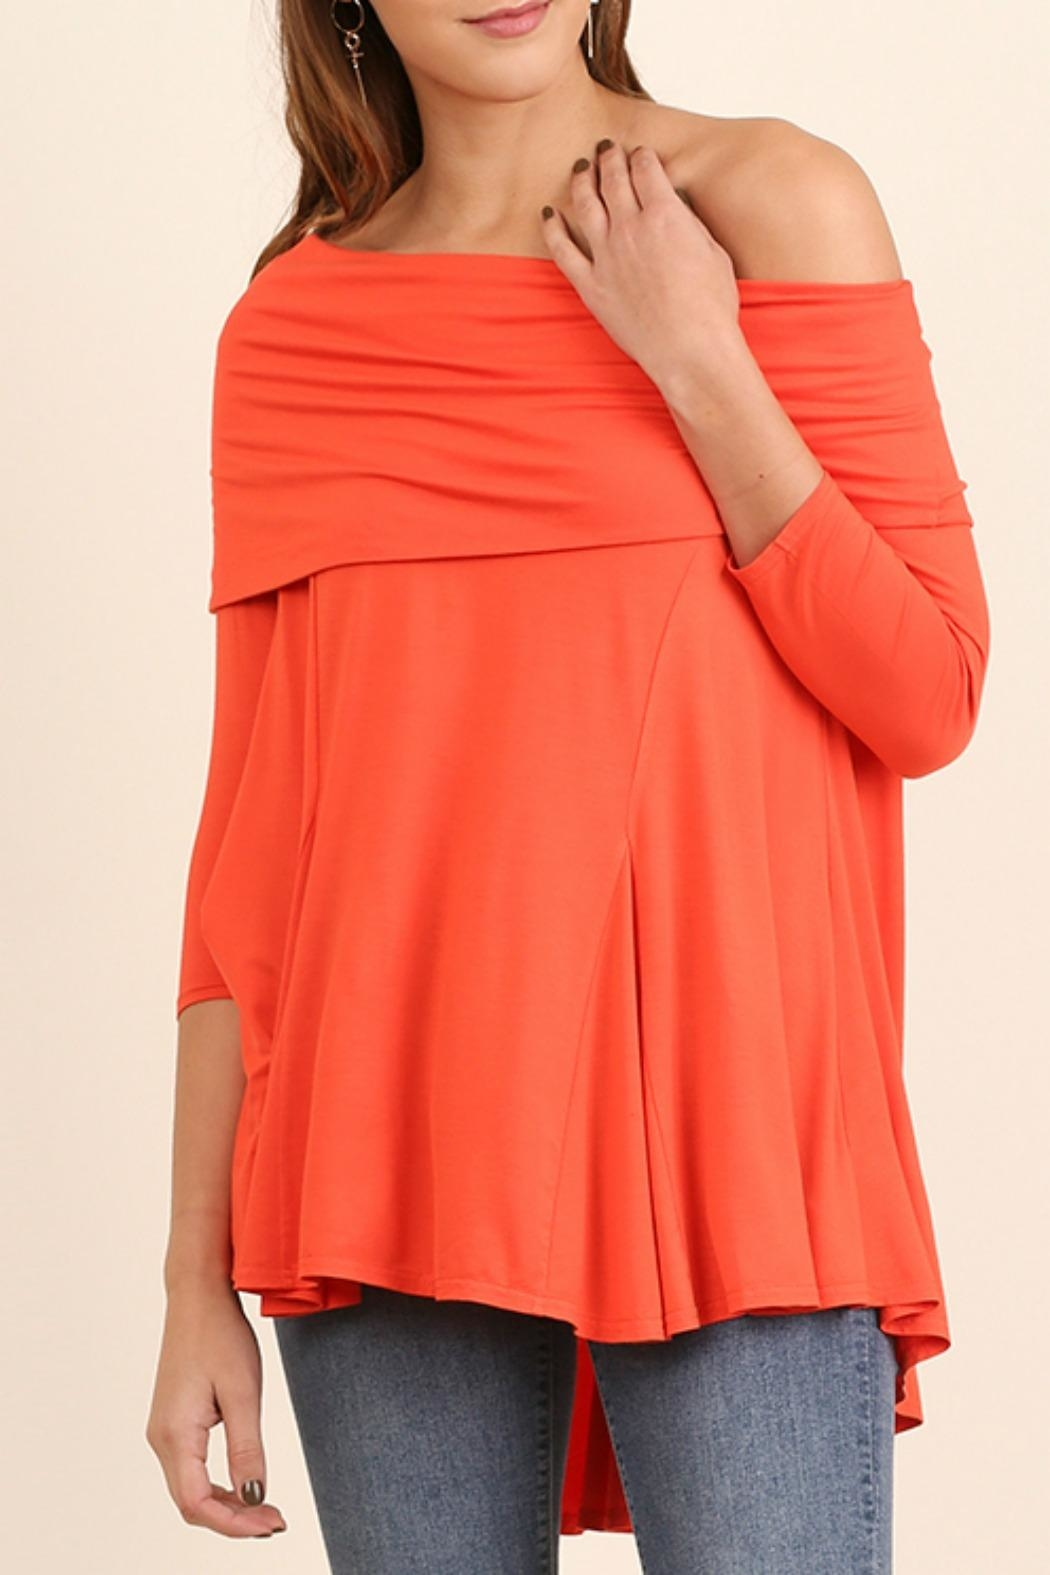 Umgee USA One Shoulder Top - Front Cropped Image